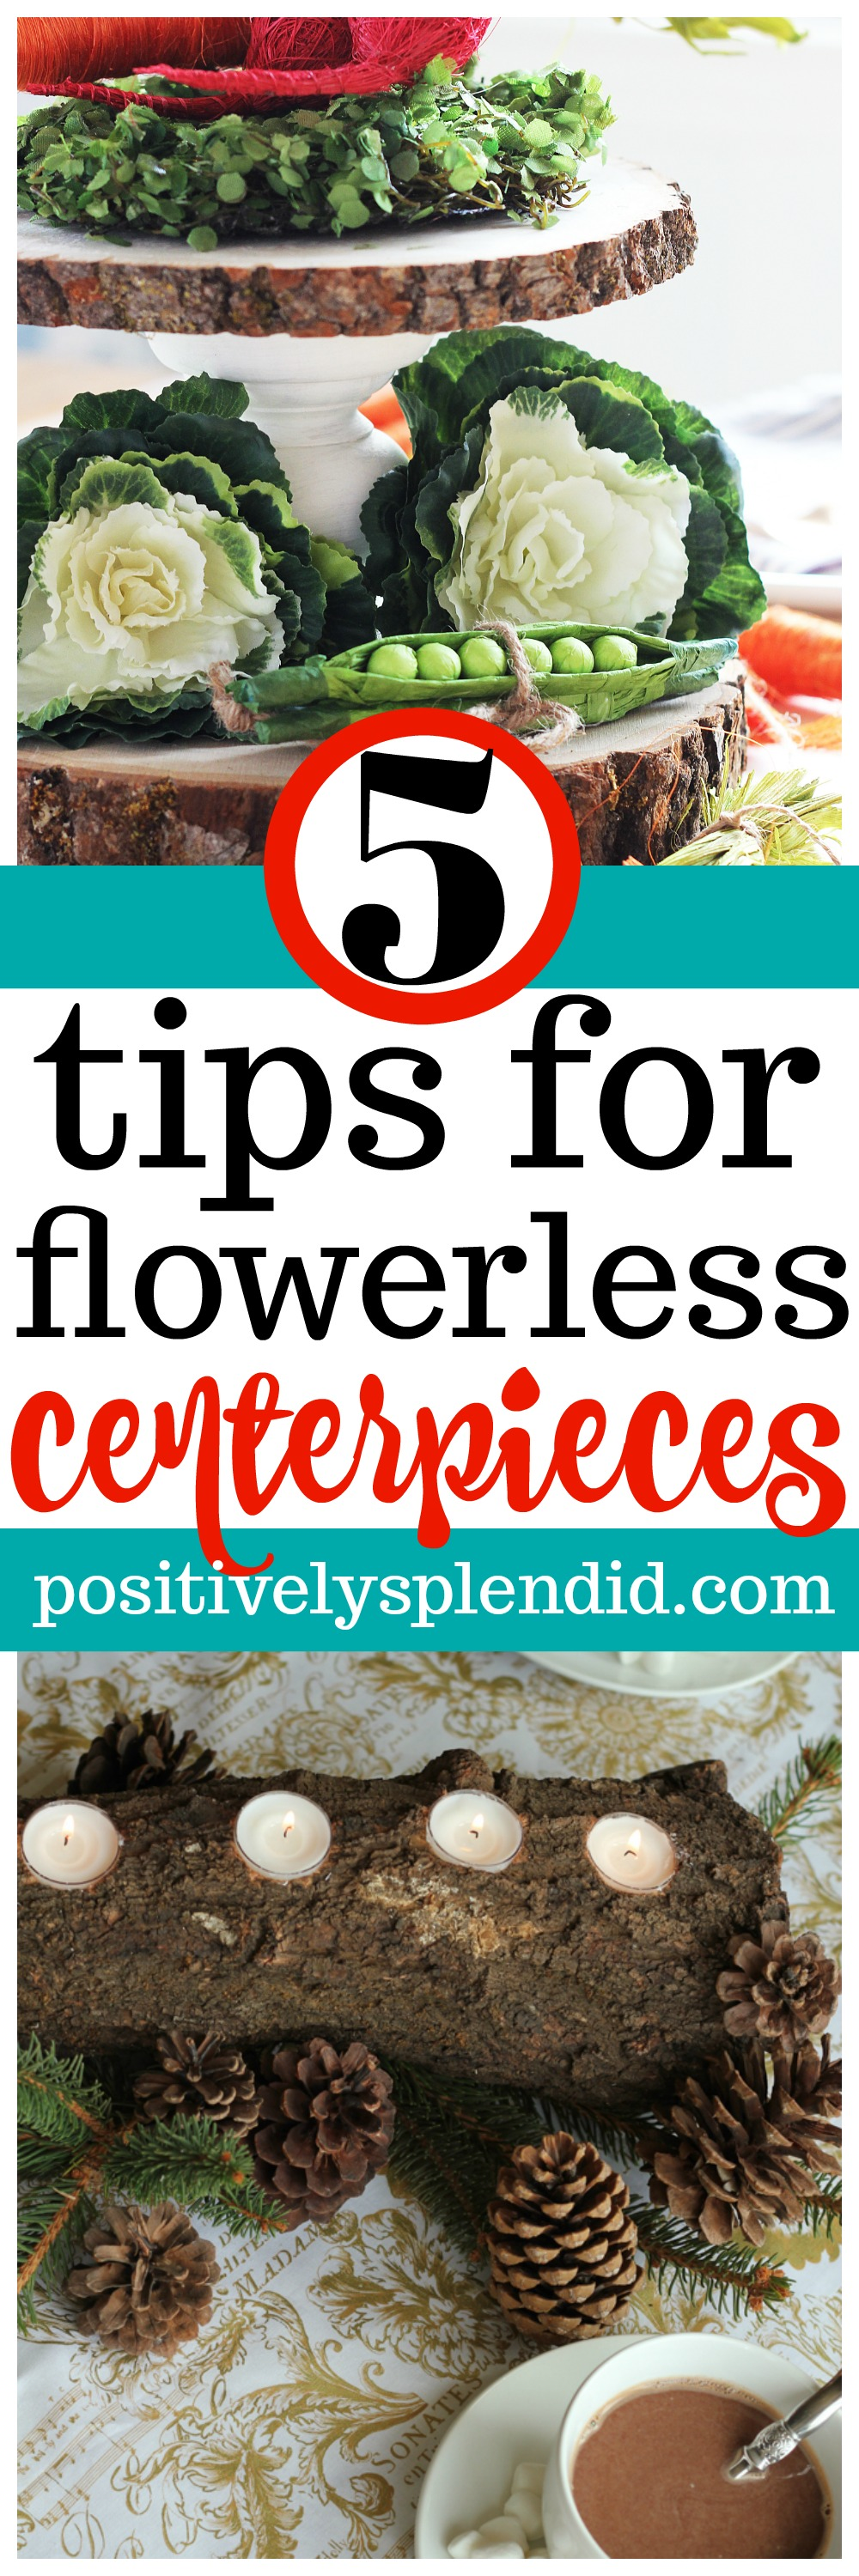 Flowerless Centerpiece Tips